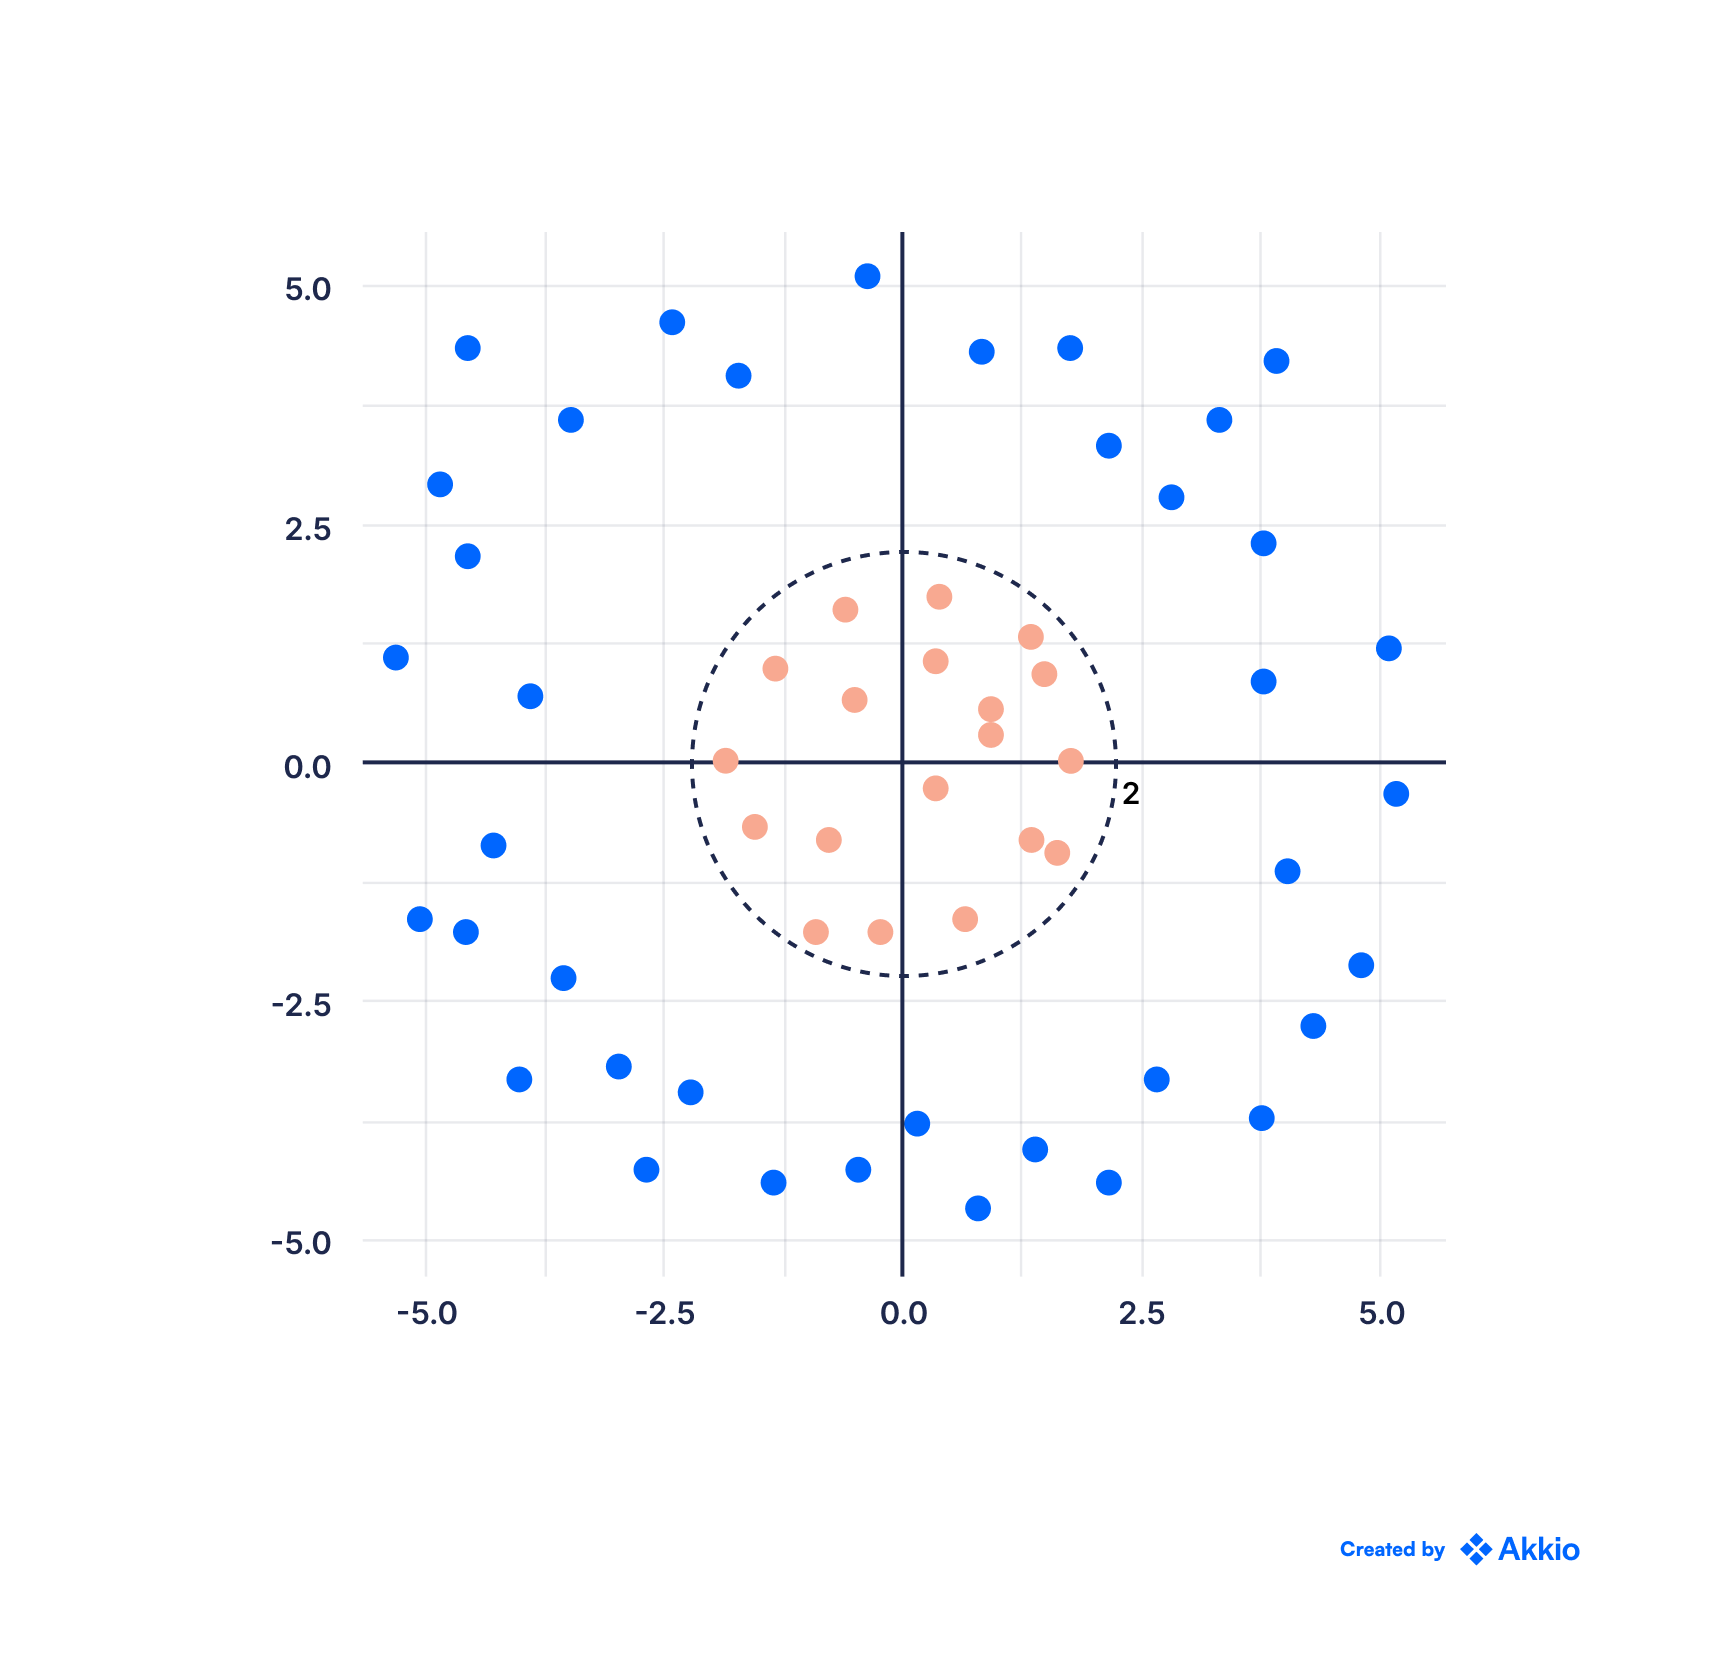 A scatter plot with points organized in a circular way. One cluster of points (in peach color) is located near the origin point/center. Another cluster is located on the outer sides, as if outlining the circuference of a larger circle (these points are in blue)